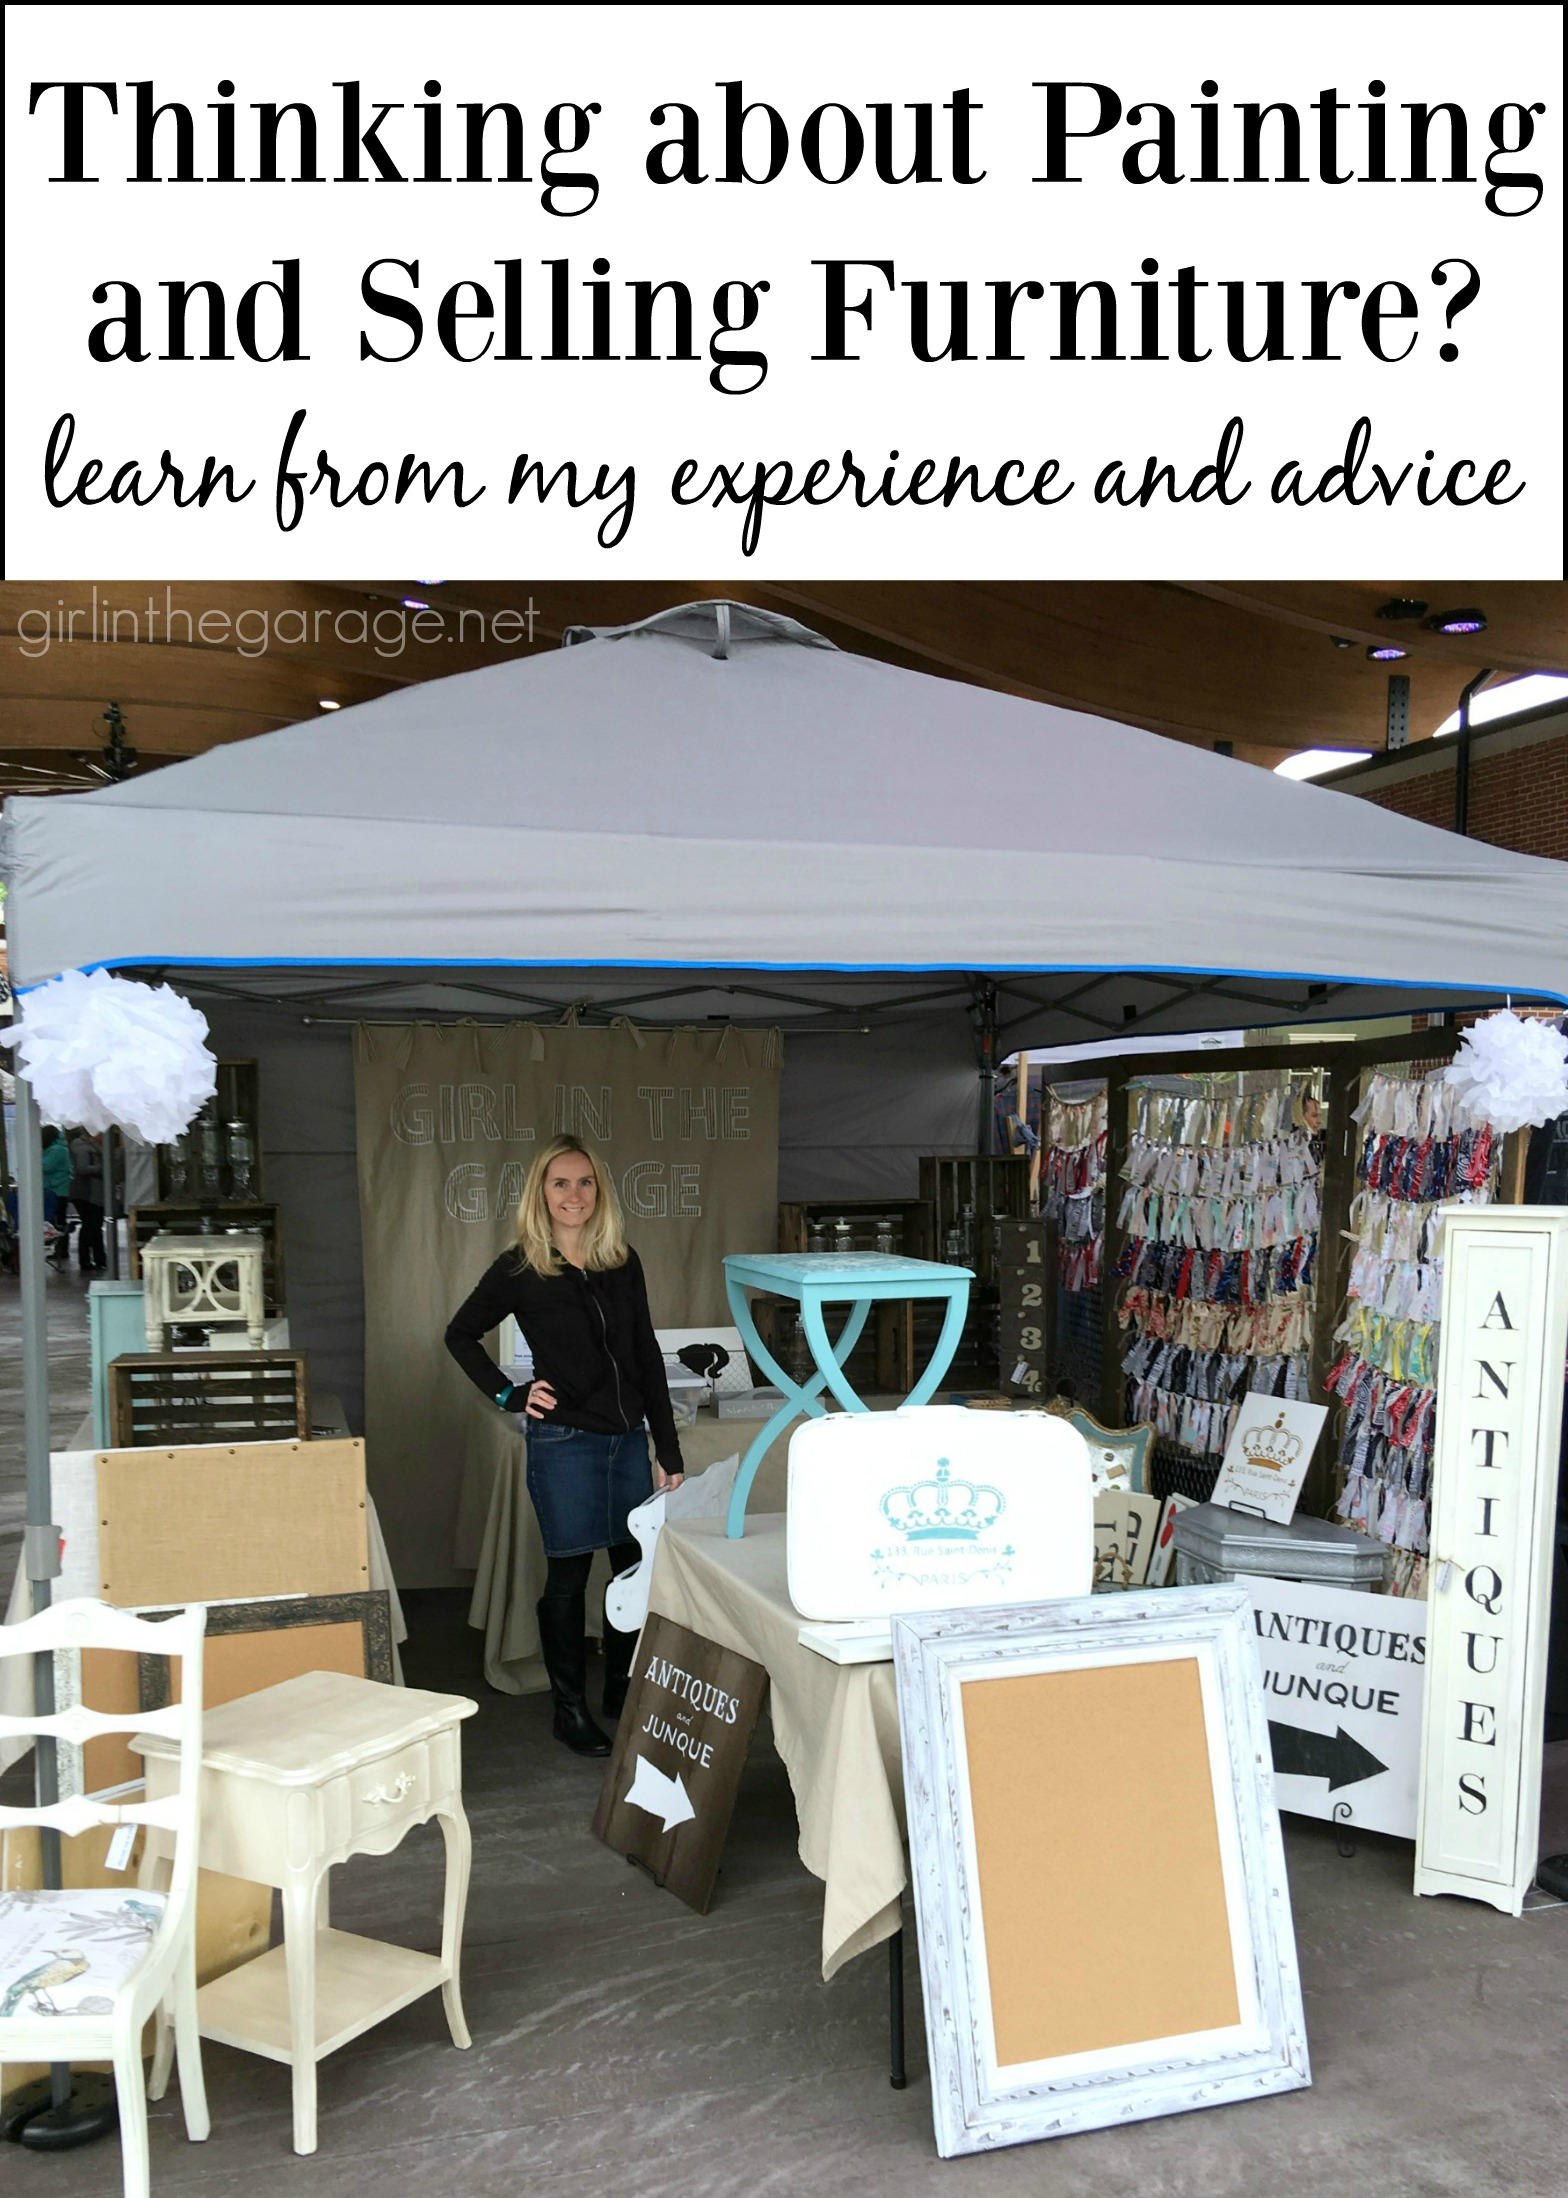 Thinking about painting and selling furniture as a business? Learn from my experience and advice. girlinthegarage.net